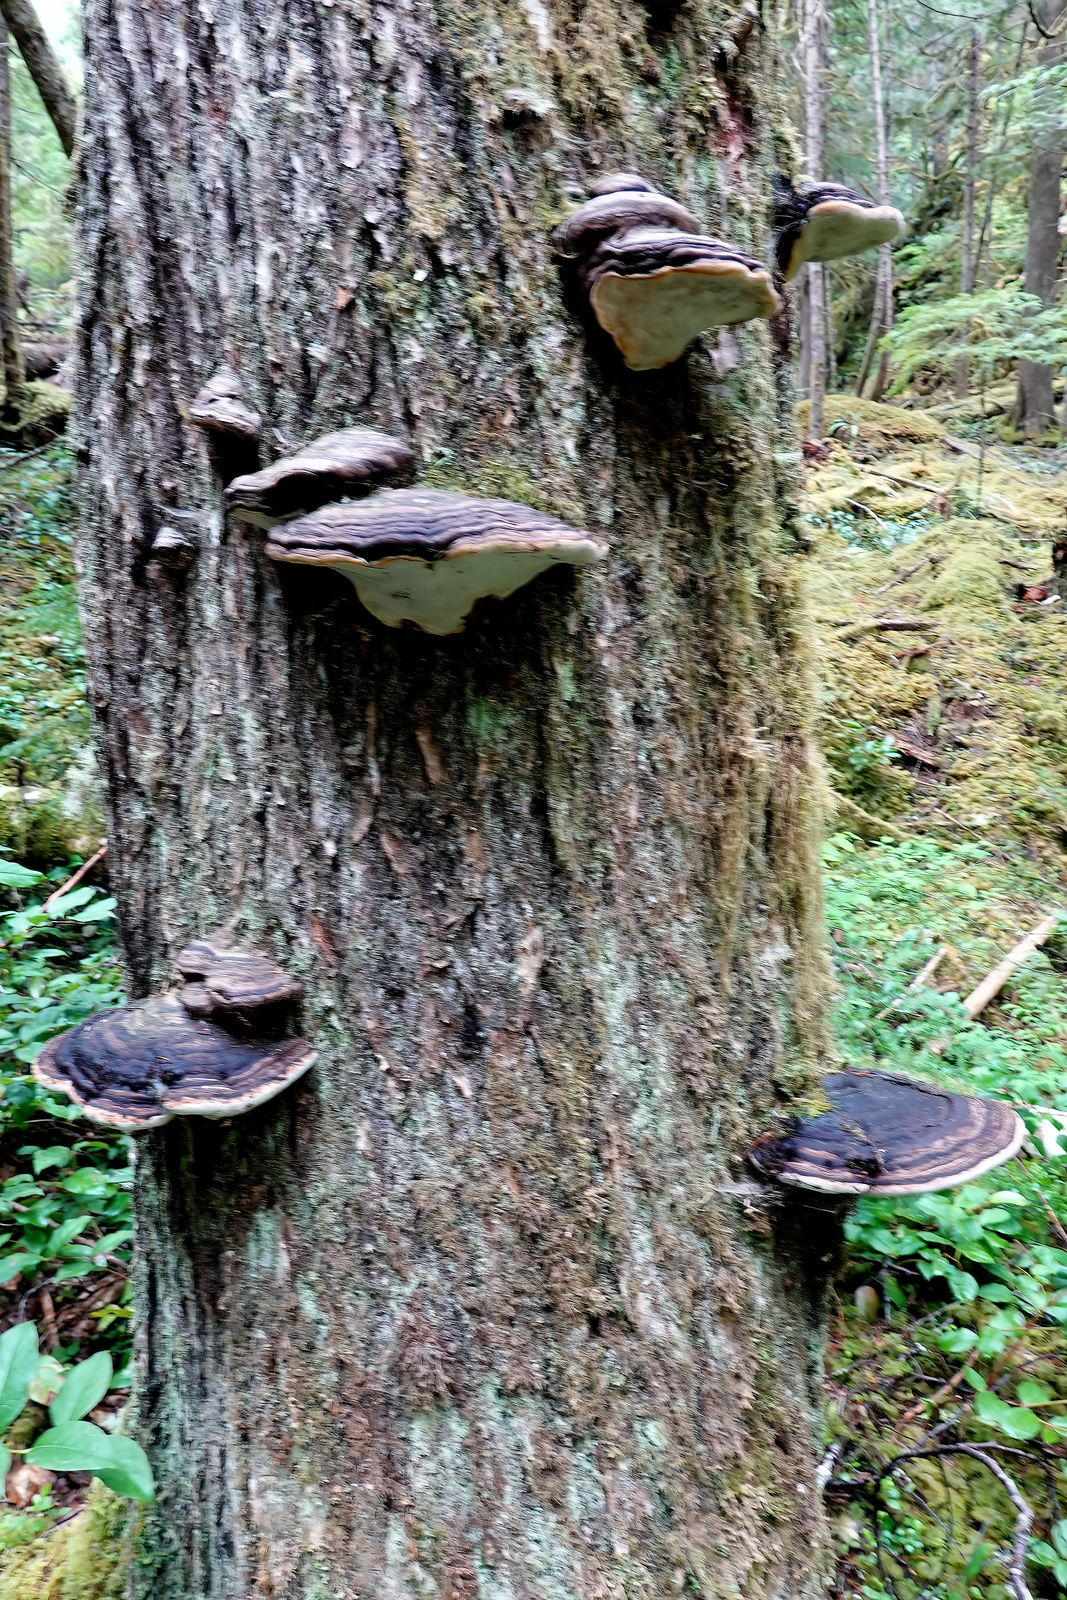 The bracket fungus sometimes grow in clumps